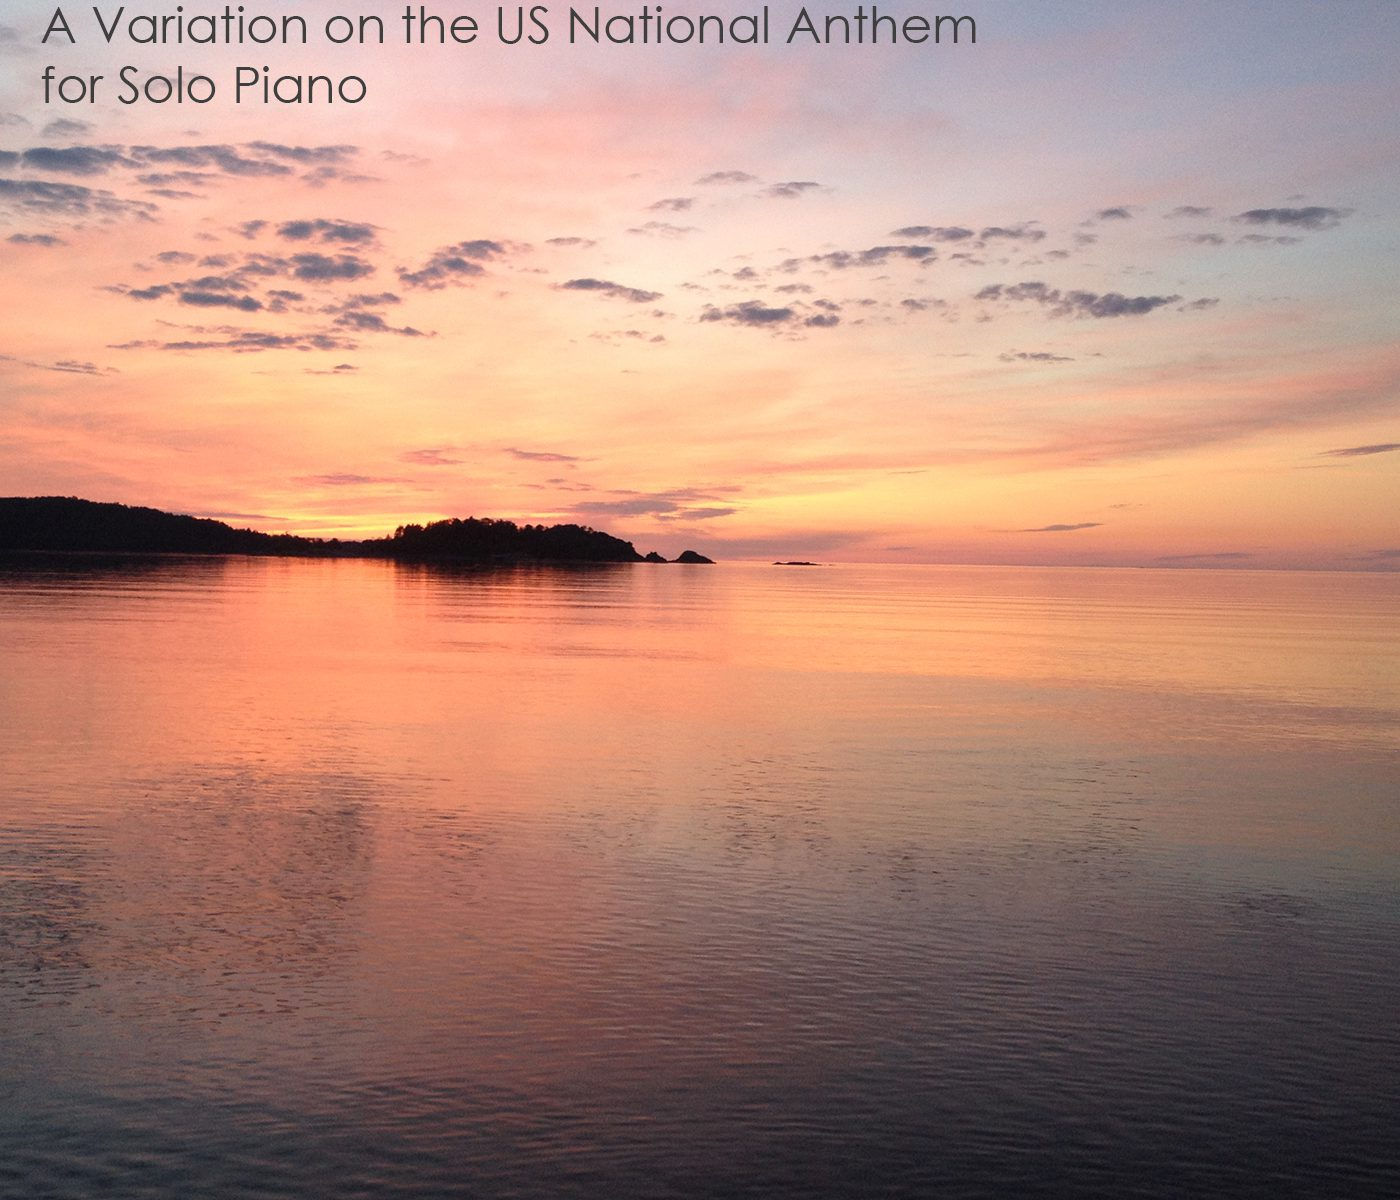 The Star-Spangled Banner: A Variation on the US National Anthem for Solo Piano - Album Cover Art